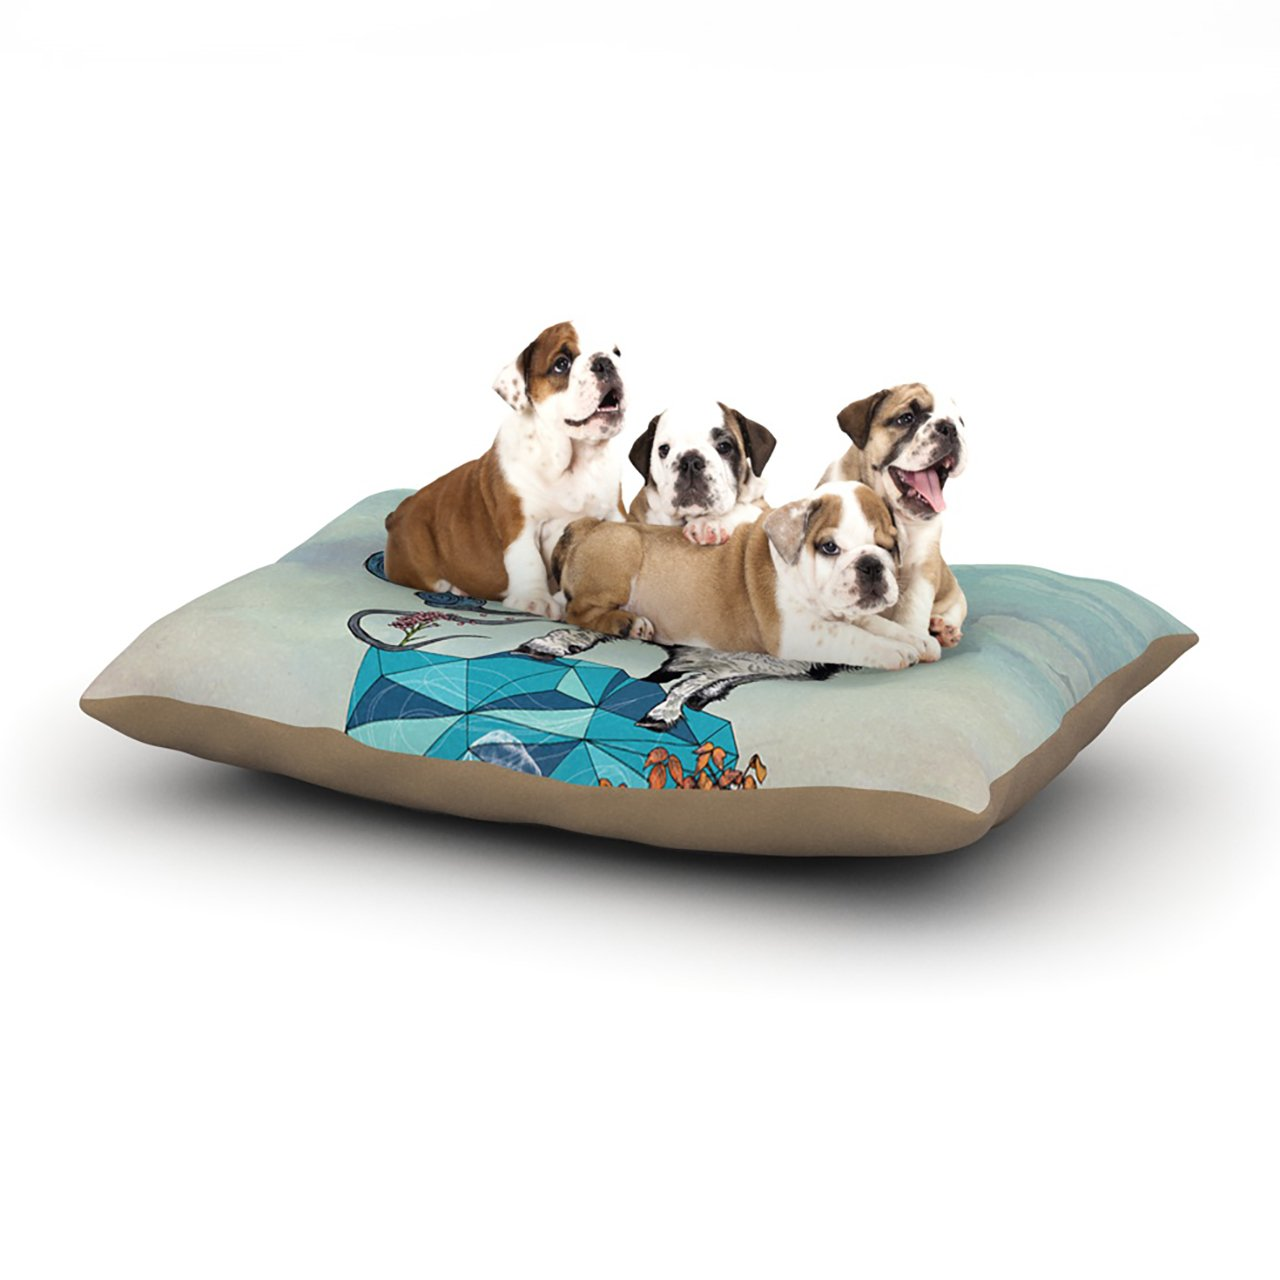 Large 30\ Kess InHouse Mat Miller Seeking New Heights  bluee Goat Dog Bed, 30 by 40-Inch